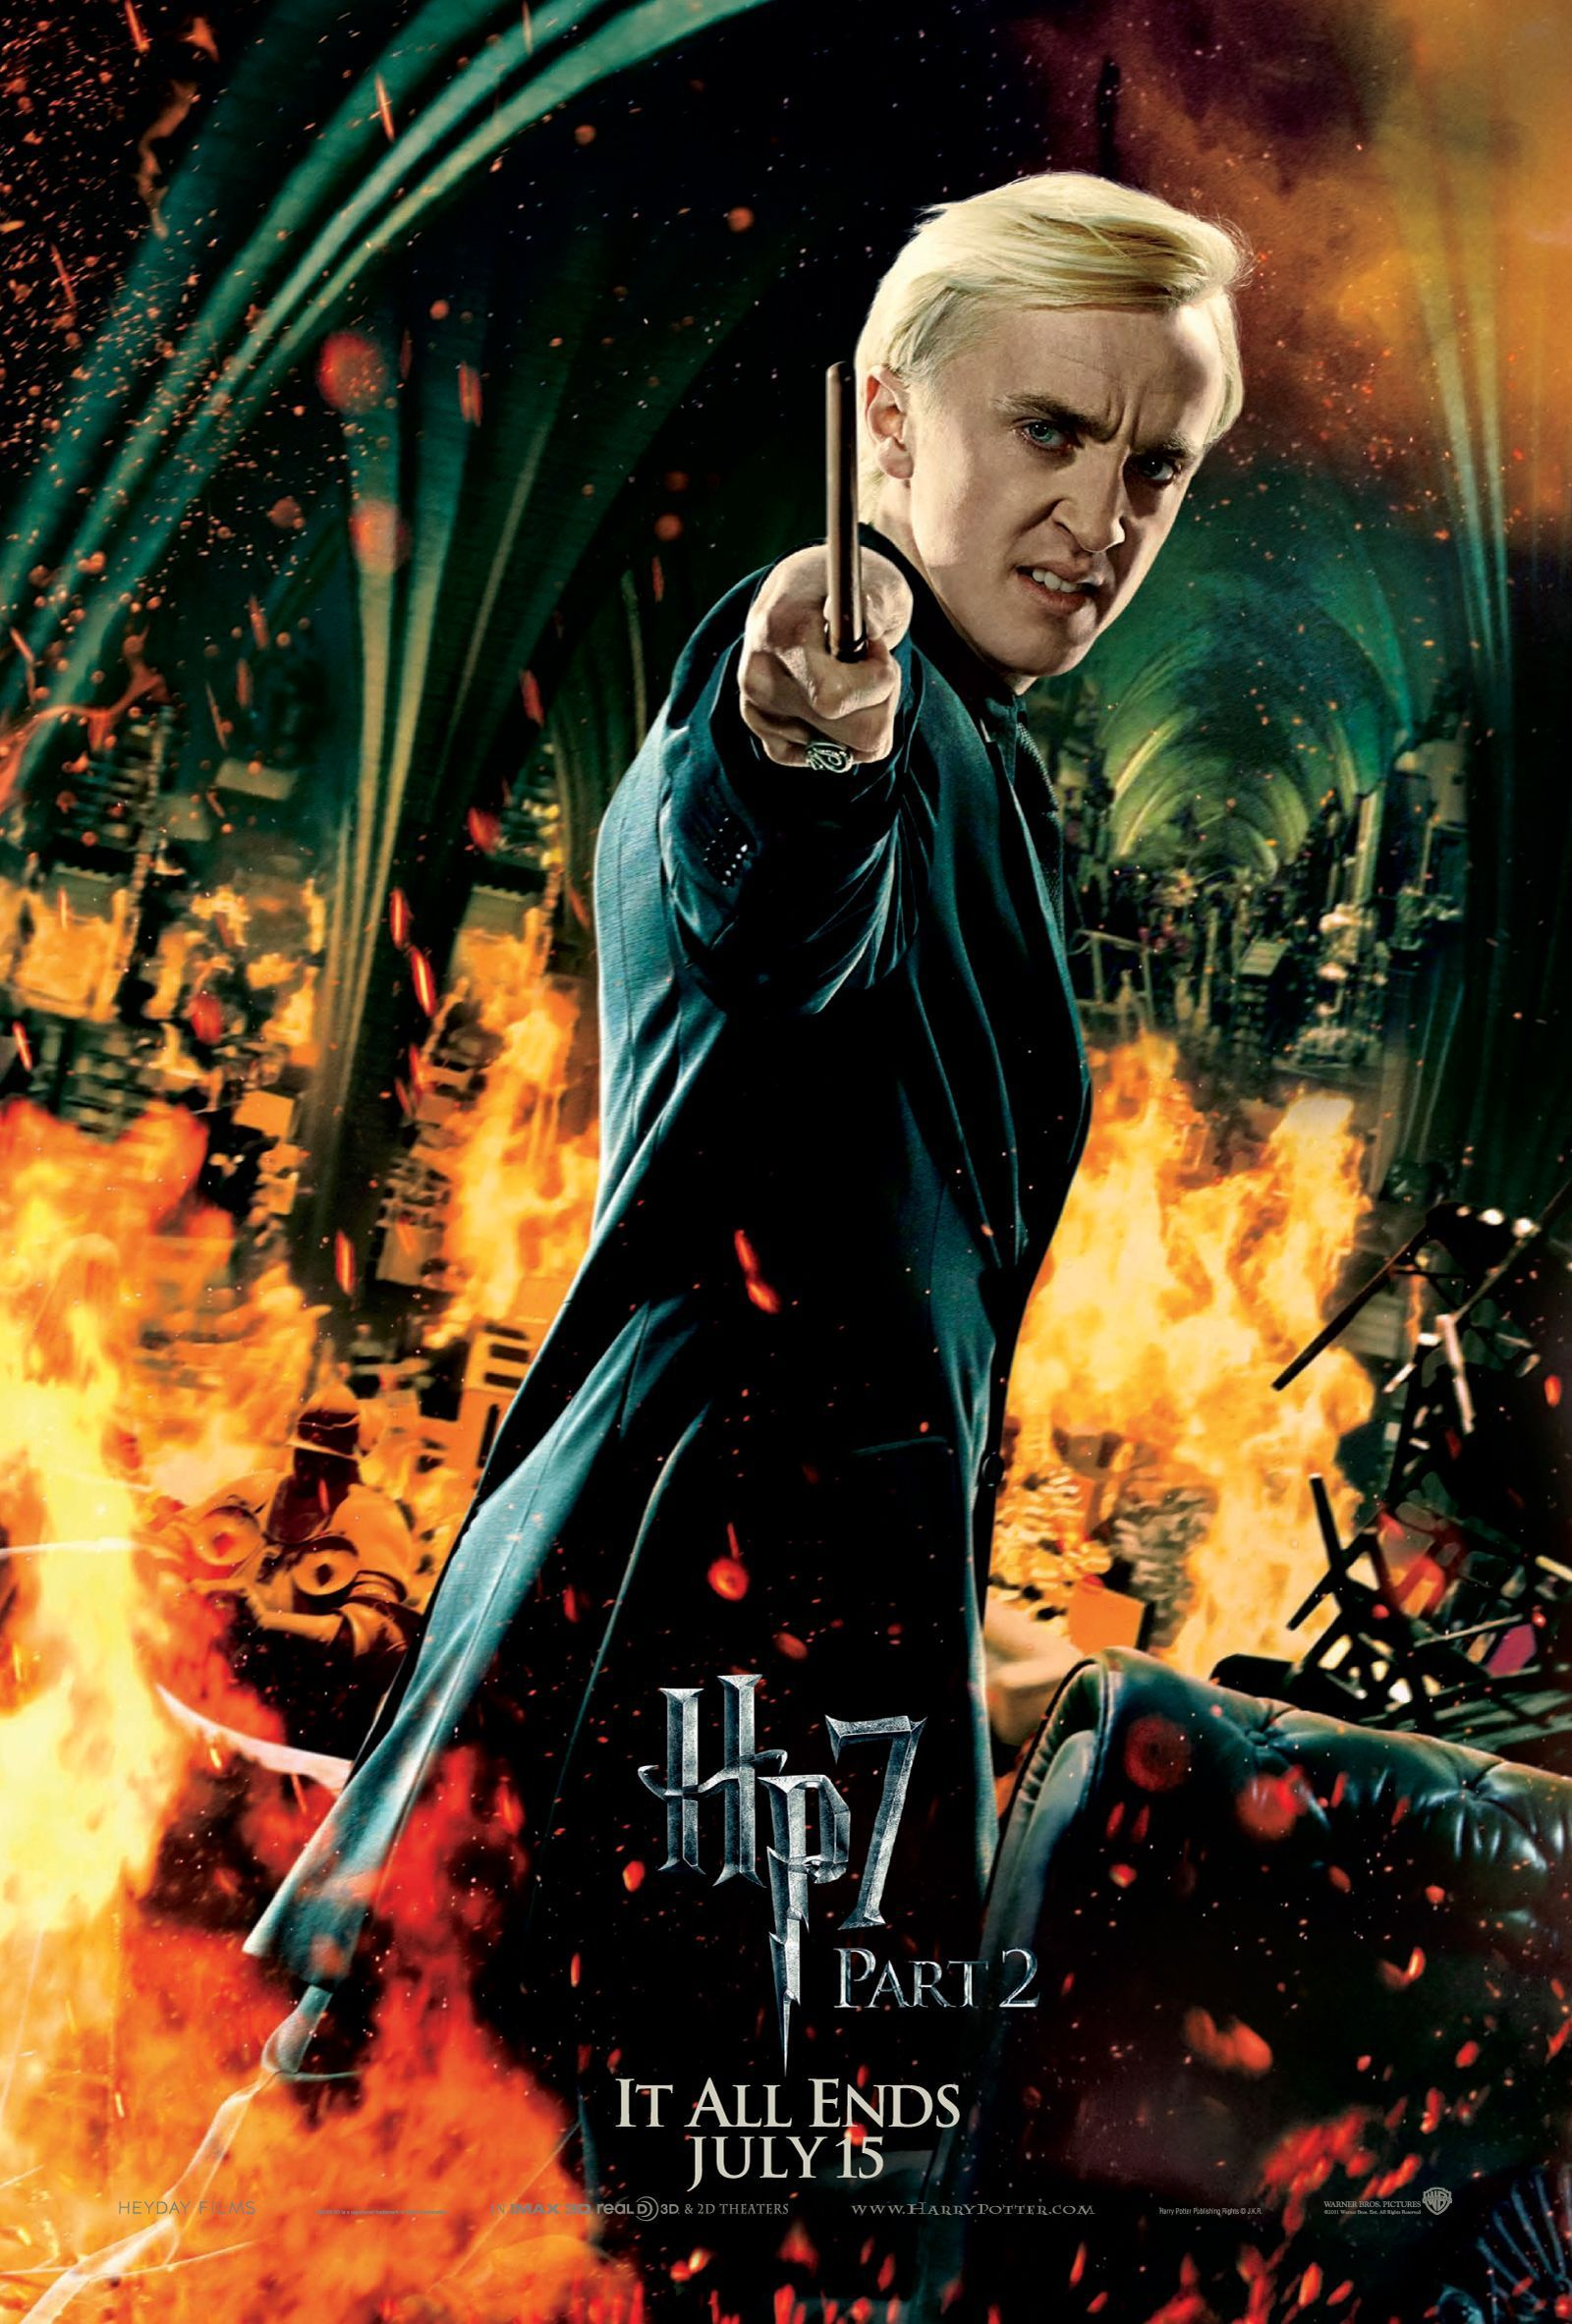 Deathly Hallows Part 2 Action Poster: Draco Malfoy [HQ ...